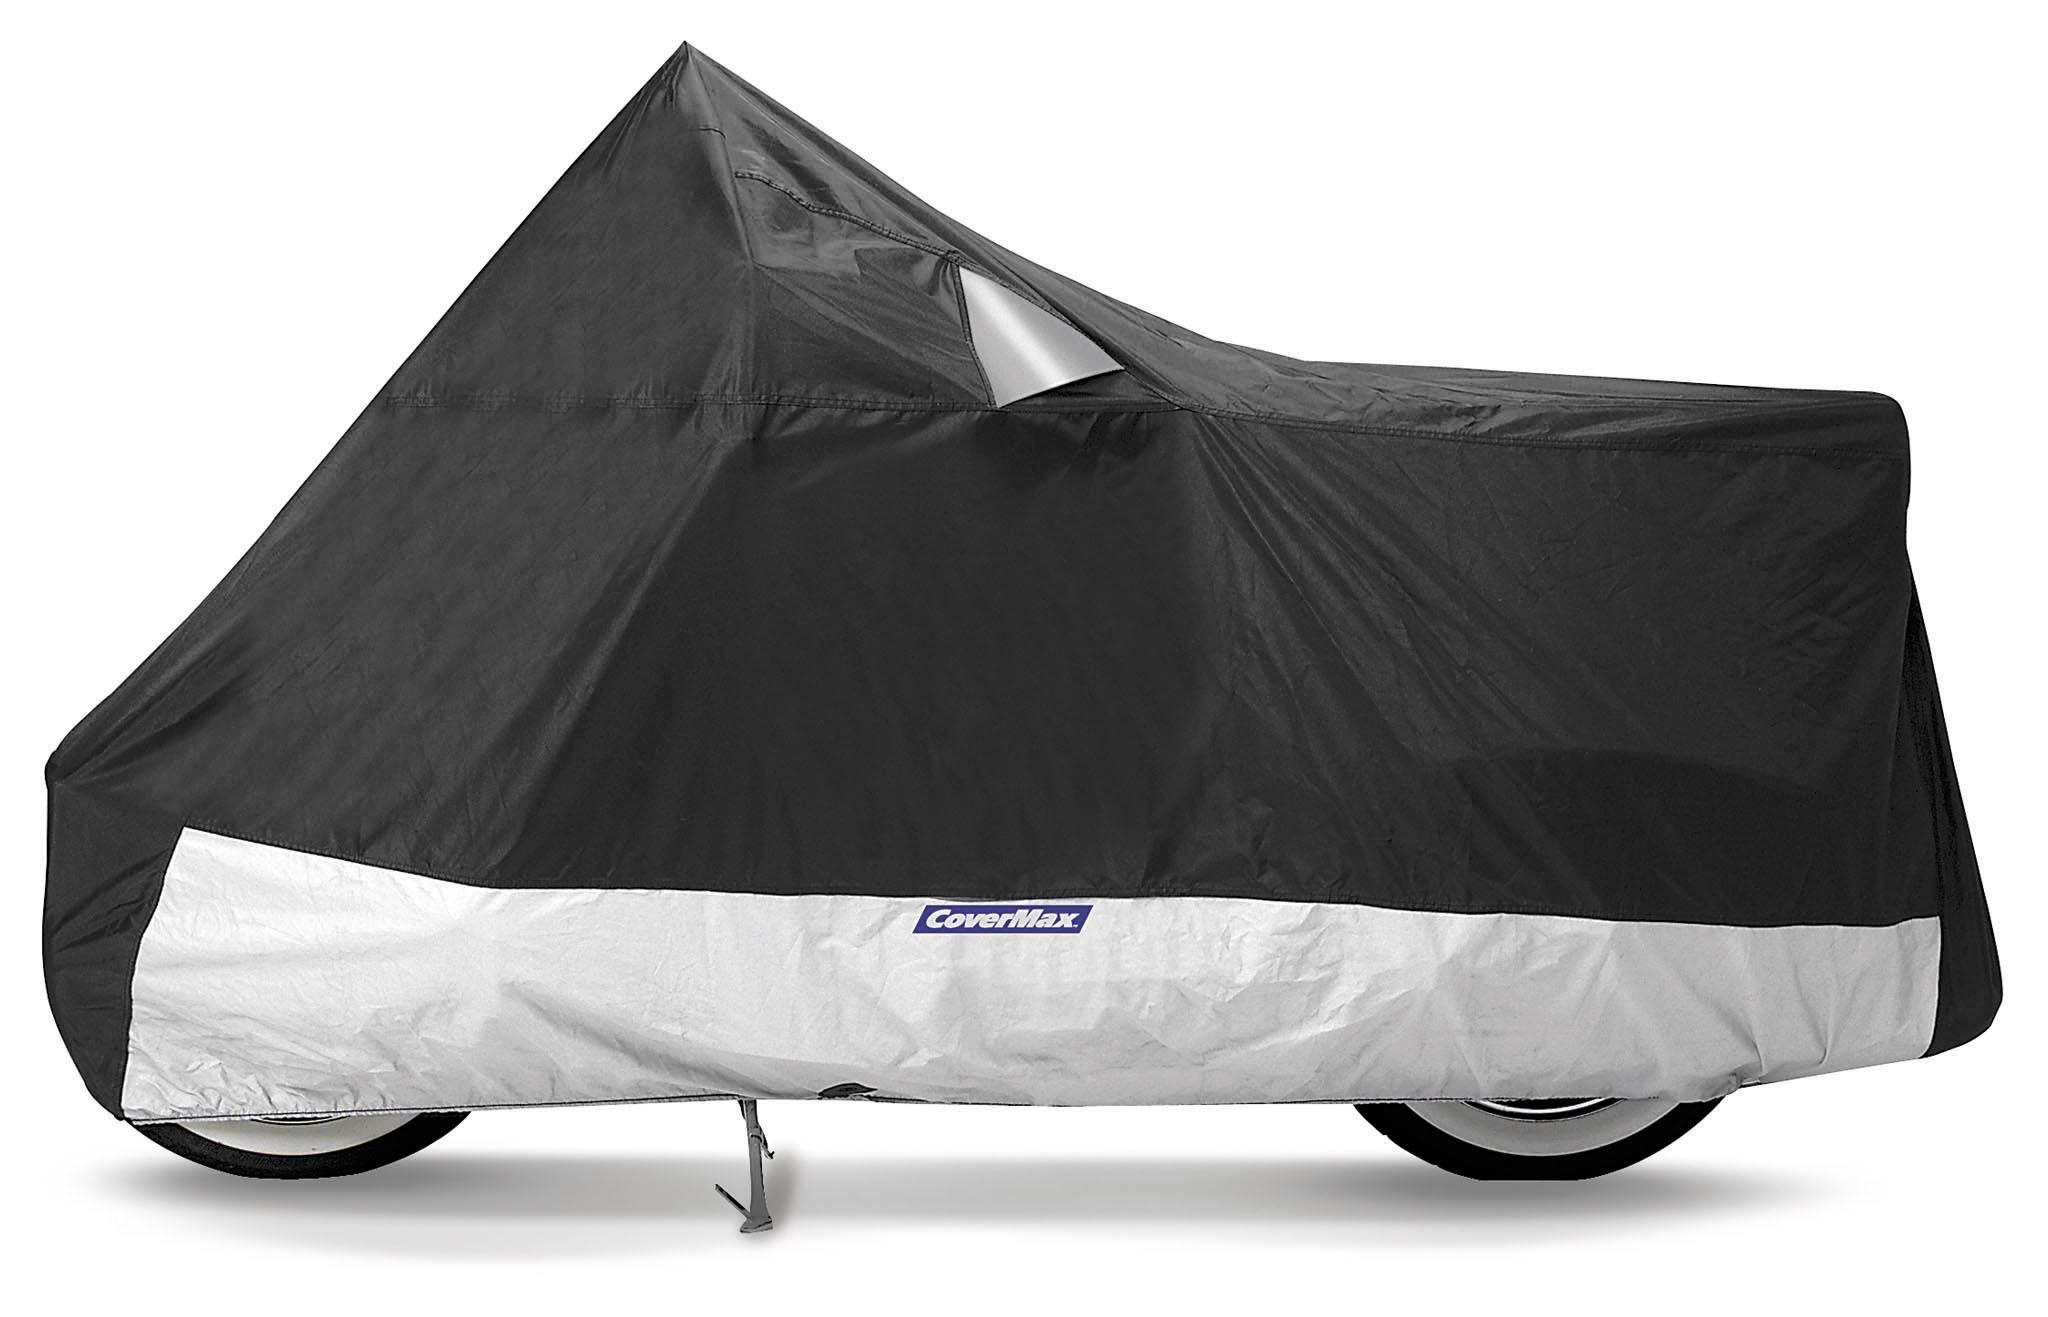 Cover Max Deluxe Motorcycle Cover Revzilla